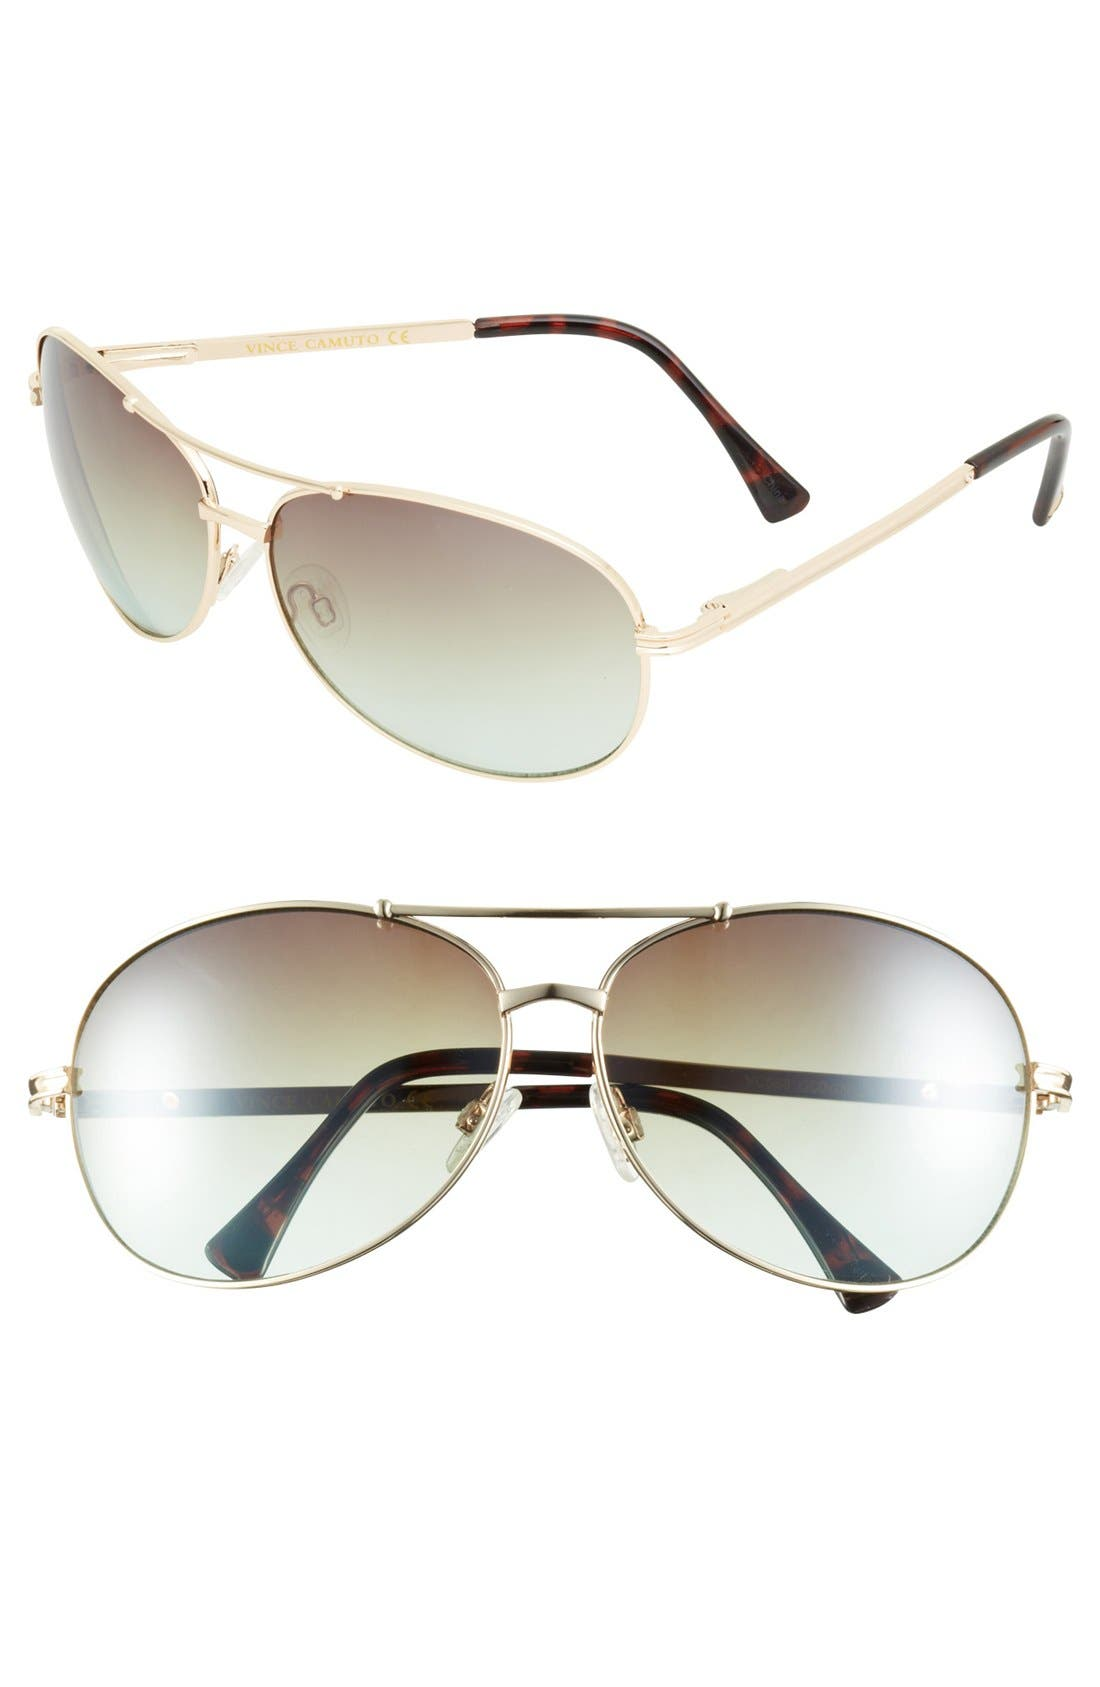 Alternate Image 1 Selected - Vince Camuto 65mm Aviator Sunglasses